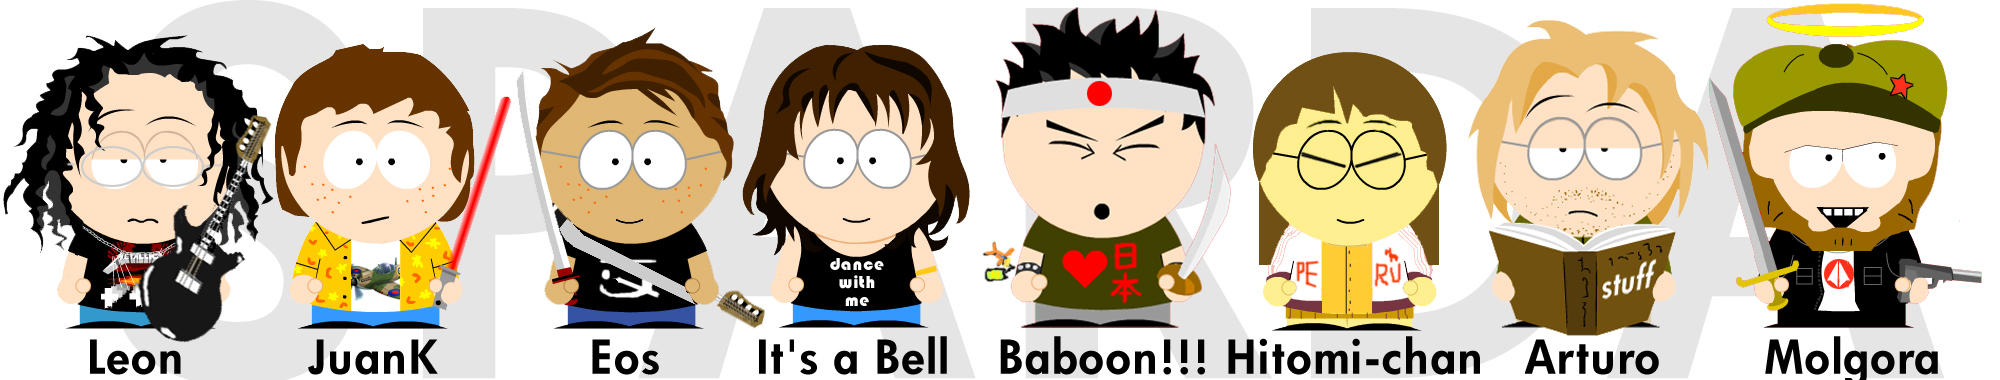 my gang south park style by eosmusashi